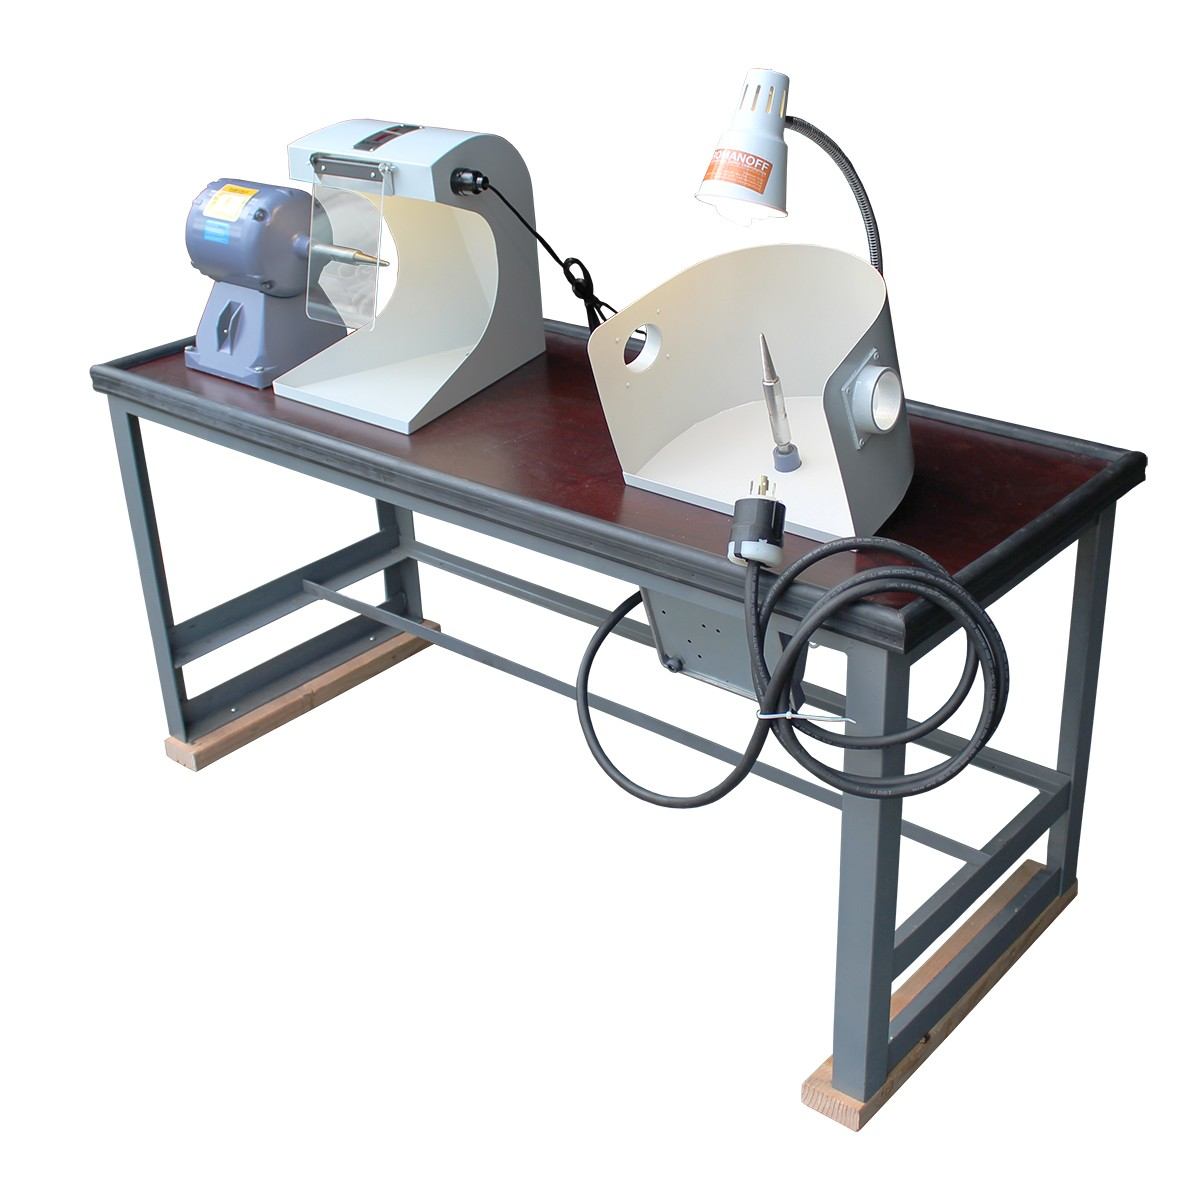 Polishing Bench Systems - 1 Polishing Motor & 1 Split Lap - 110V/220V